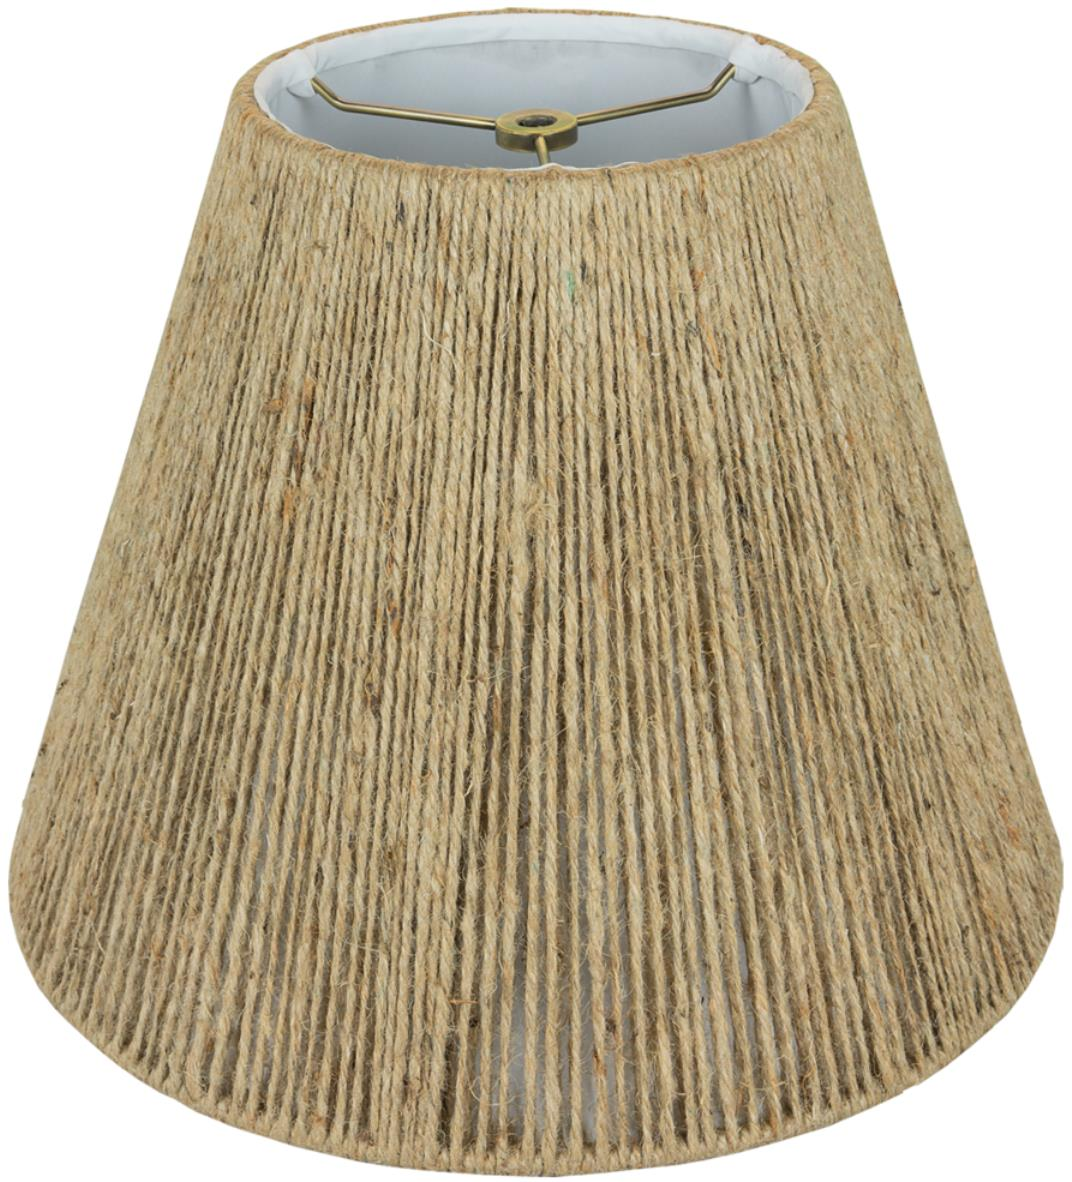 "Empire Coarse Beige Hemp String Lamp Shade 14-20""W"